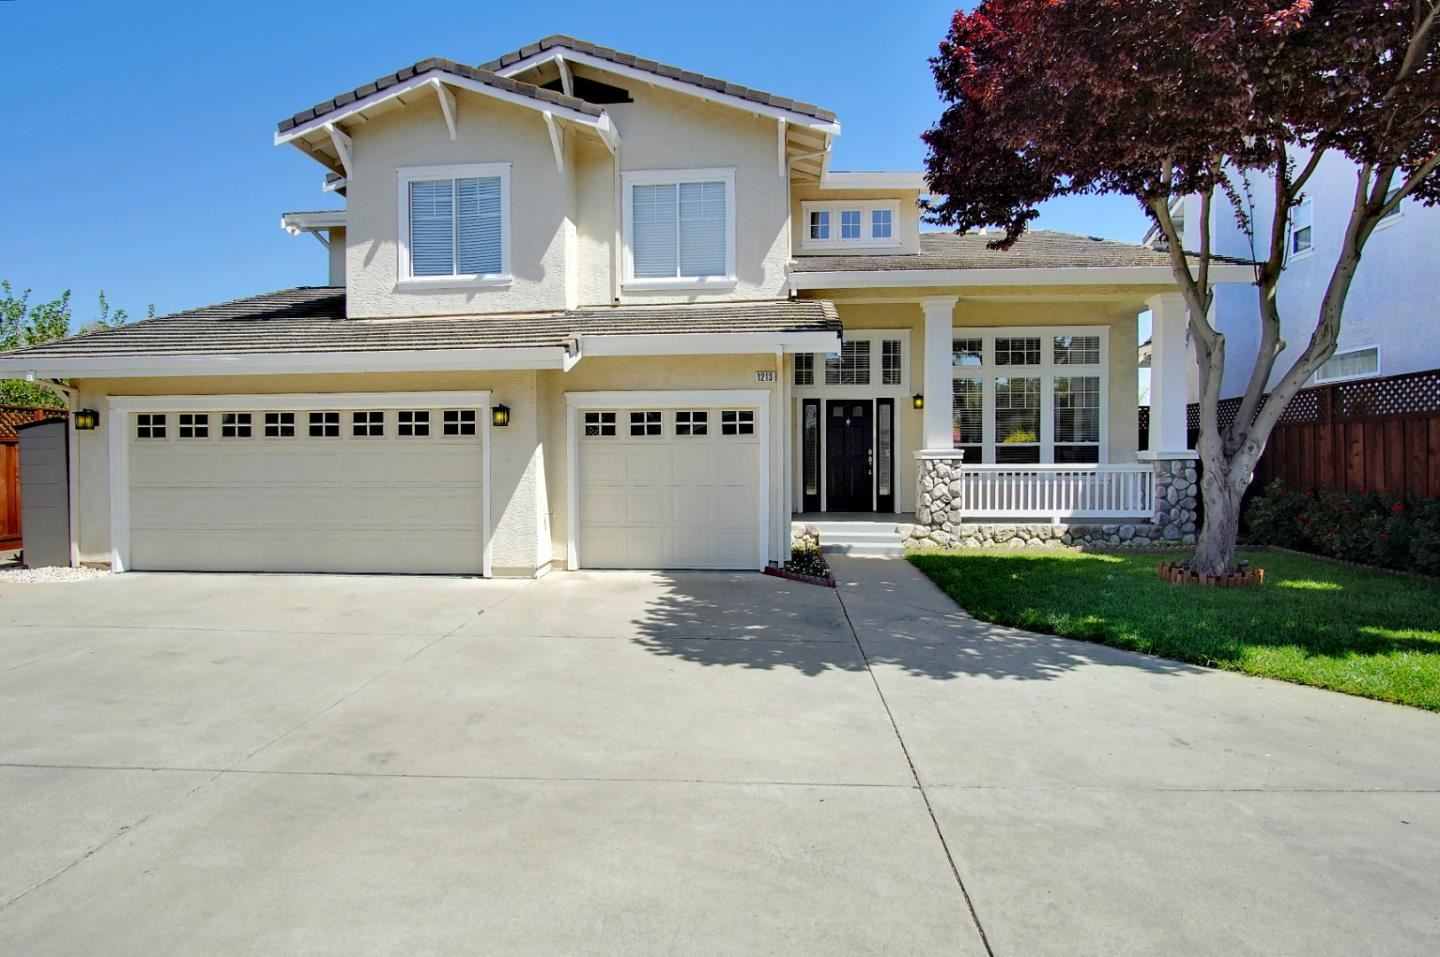 Photo for 1213 Blue Parrot CT, GILROY, CA 95020 (MLS # ML81838030)